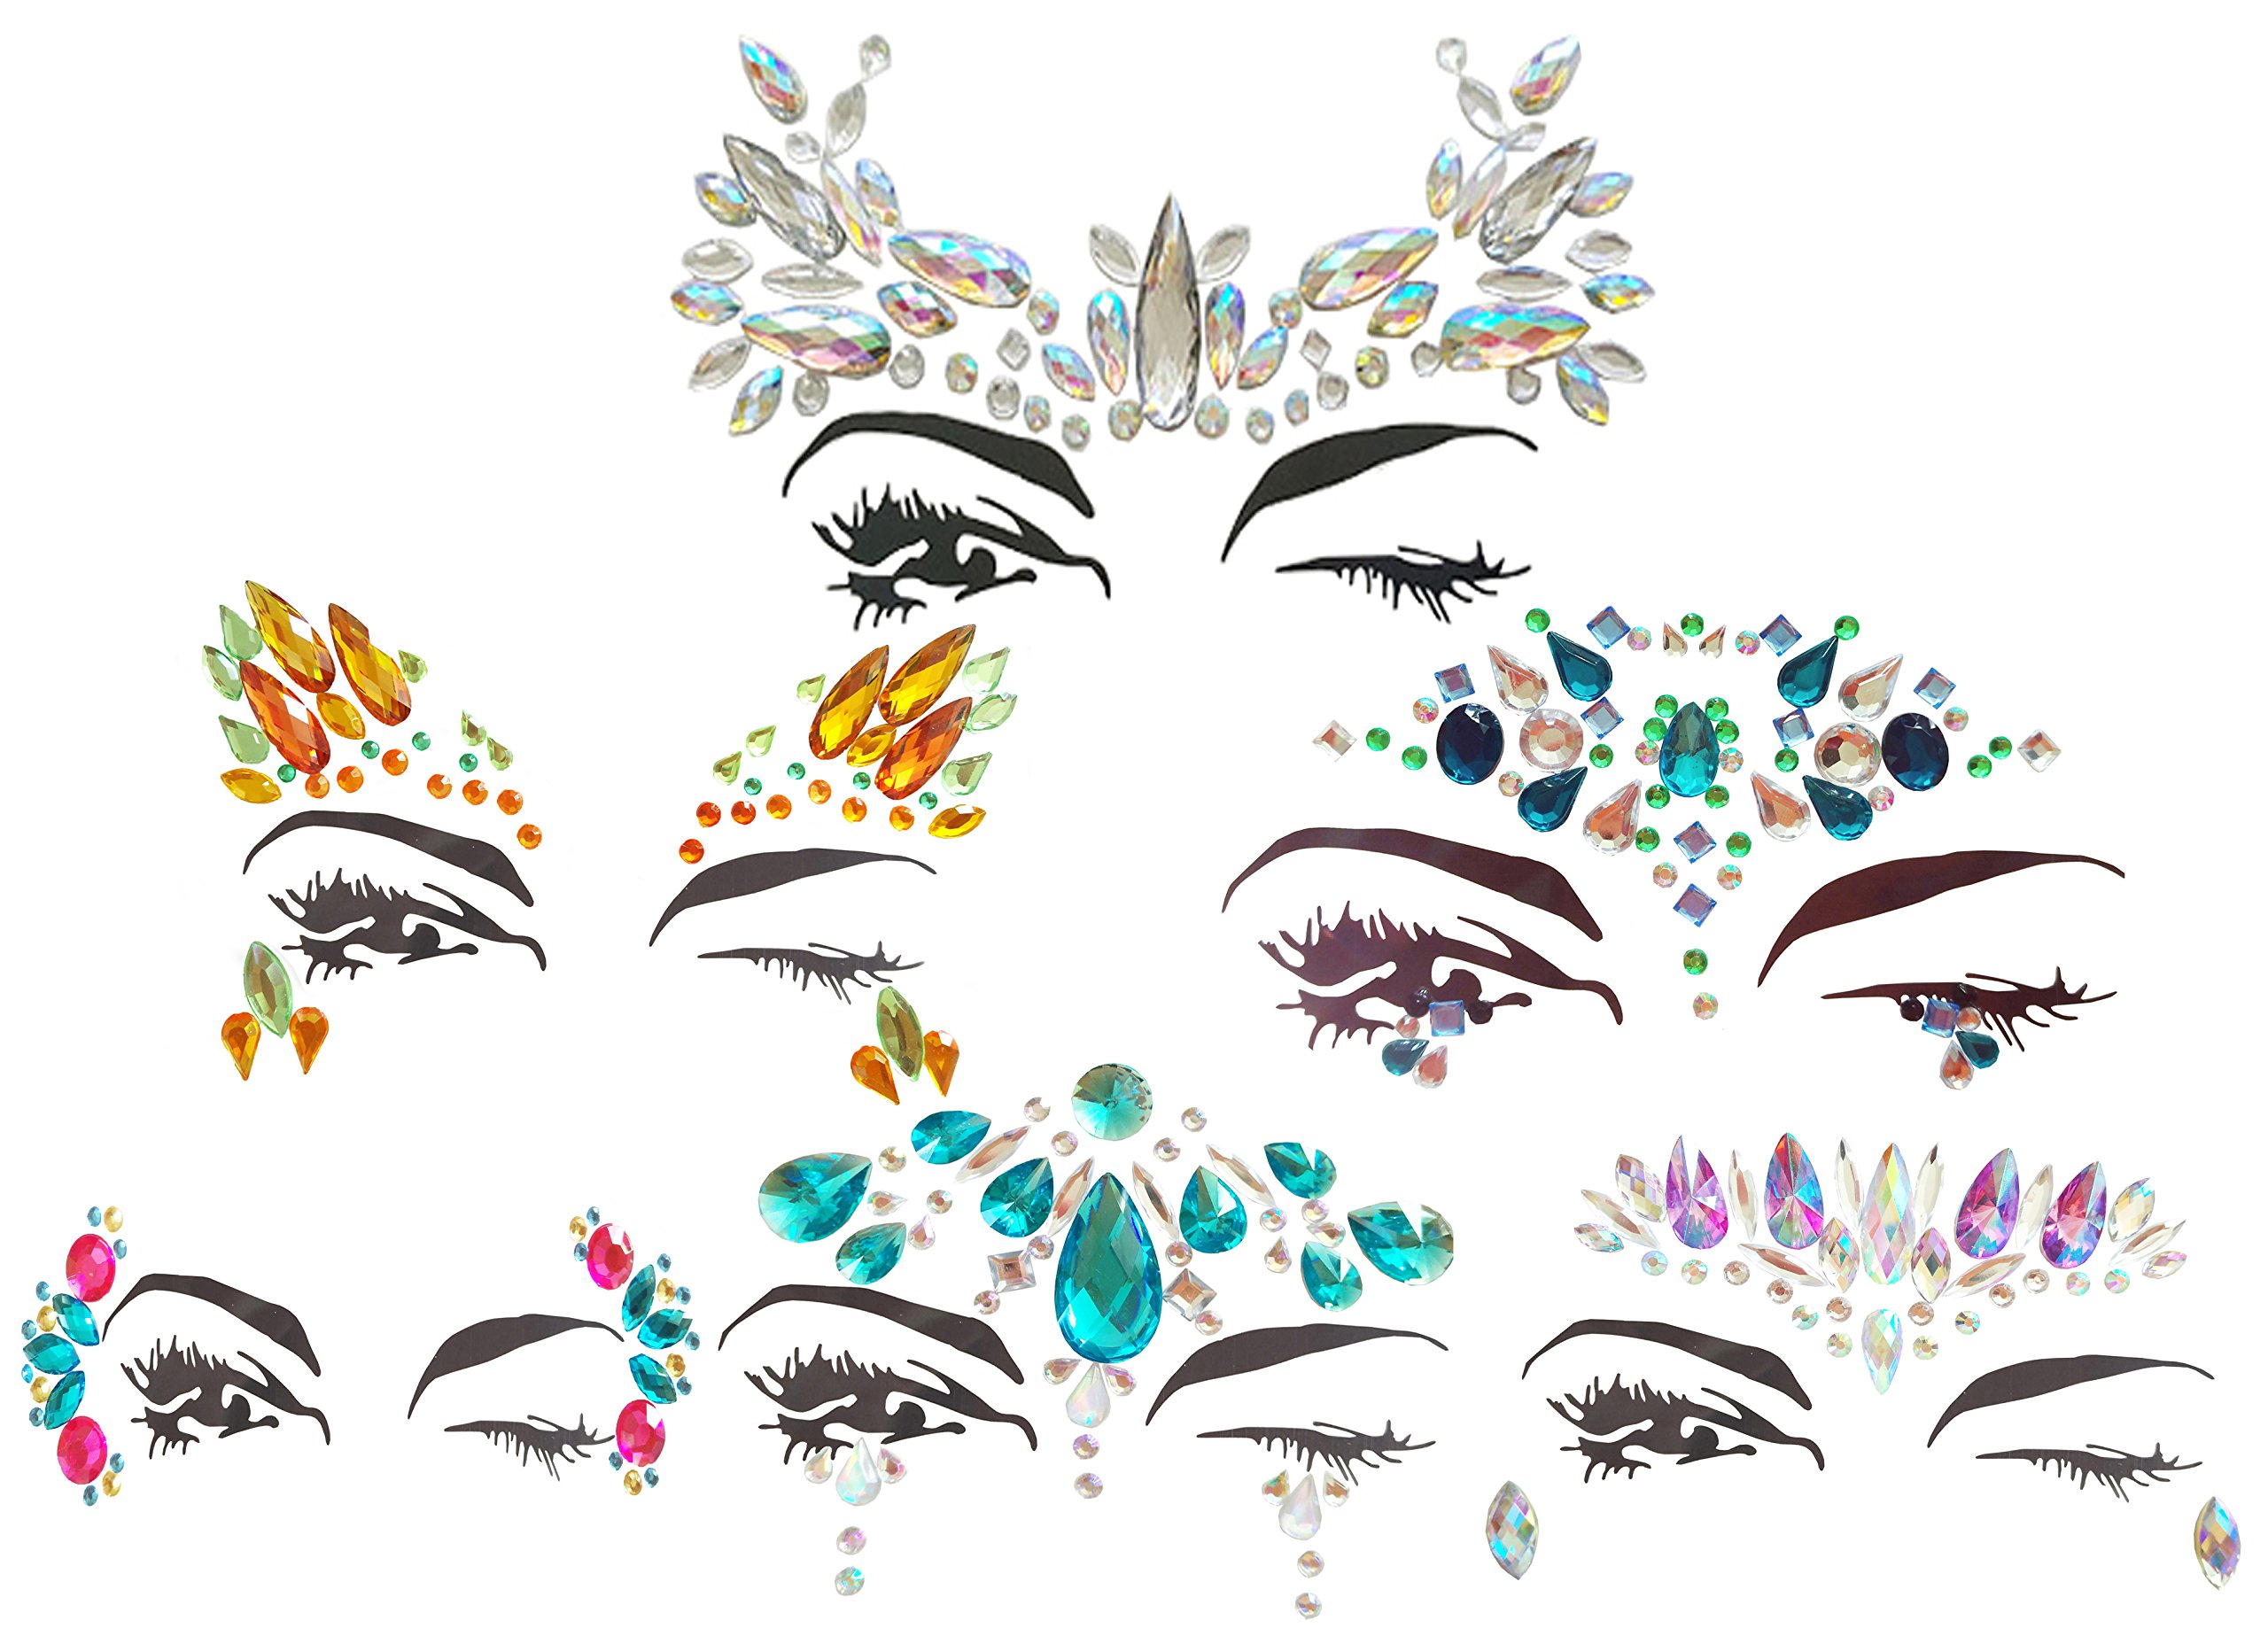 ZLXIN Shiny Face Gems Temporary Tattoo Stickers Acrylic Crystal Glitter Stickers Waterproof Face Jewels Rainbow Tears Rhinestone Eye Decoration for Party, Rave Festival, Dress-up (6 Pcs A Set)